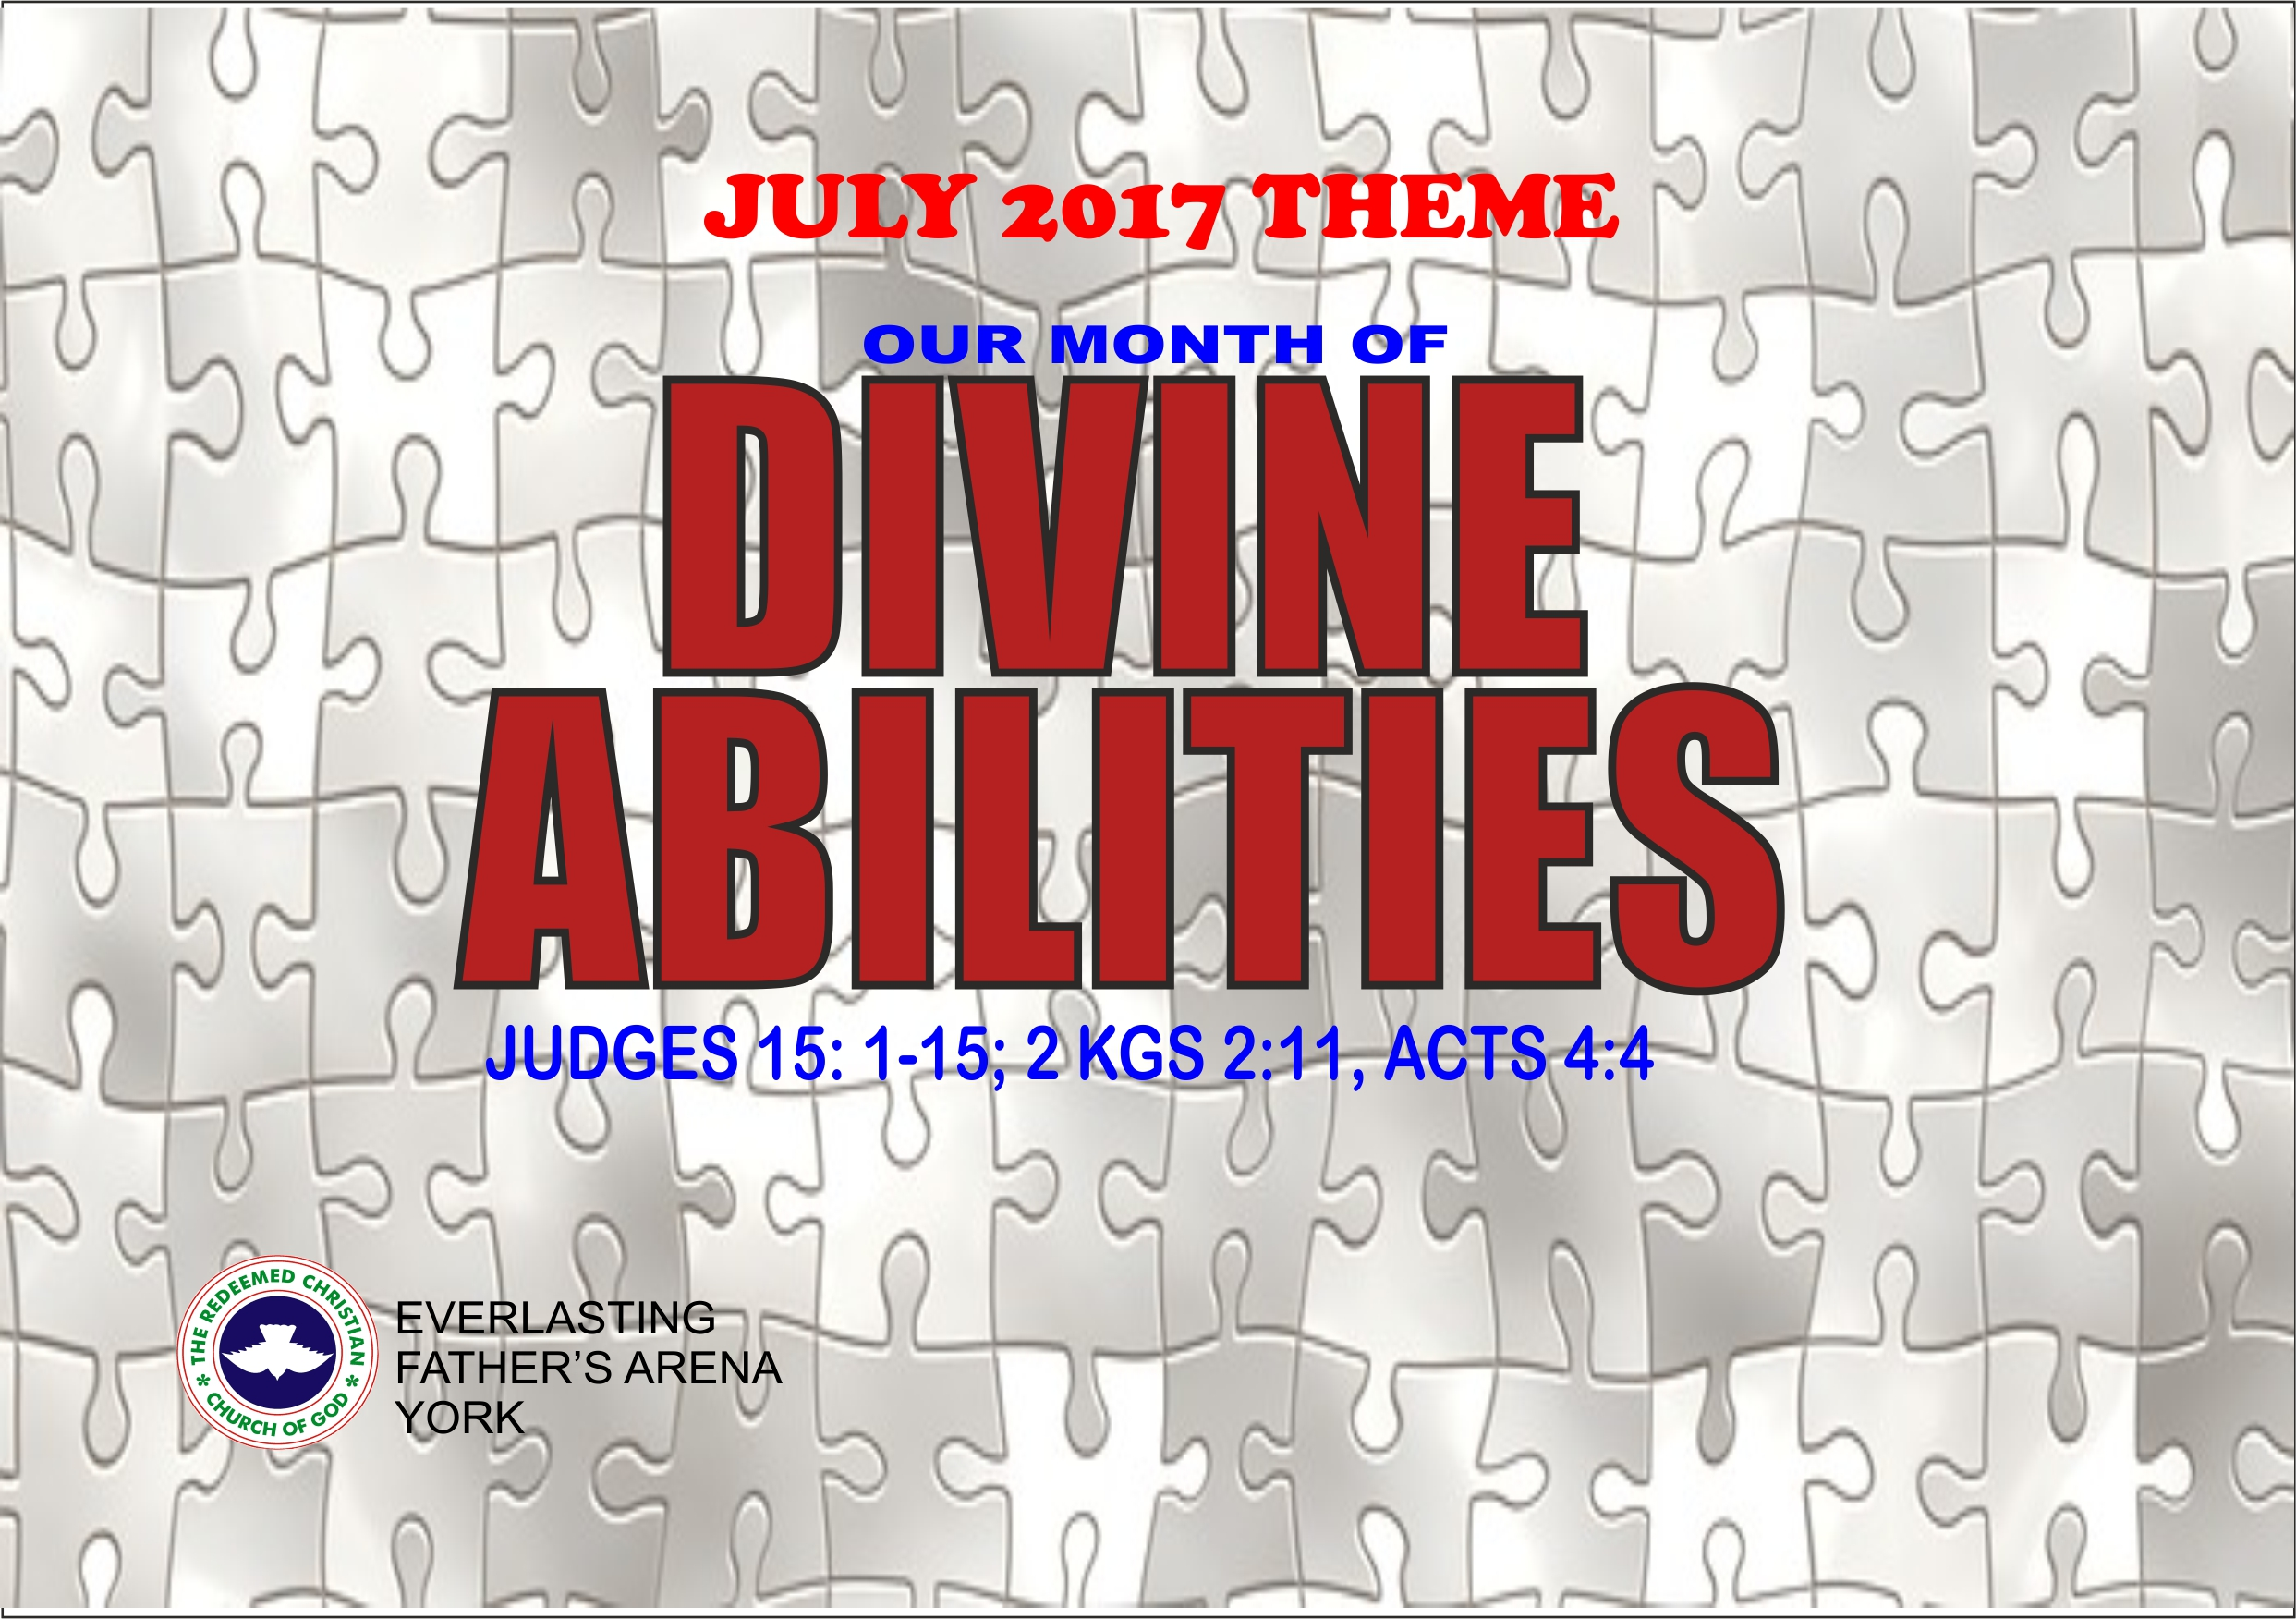 July 2017: Our Month of Divine Abilities – Judges 15: 1-15, 2 Kgs 2:11, Acts 4:4